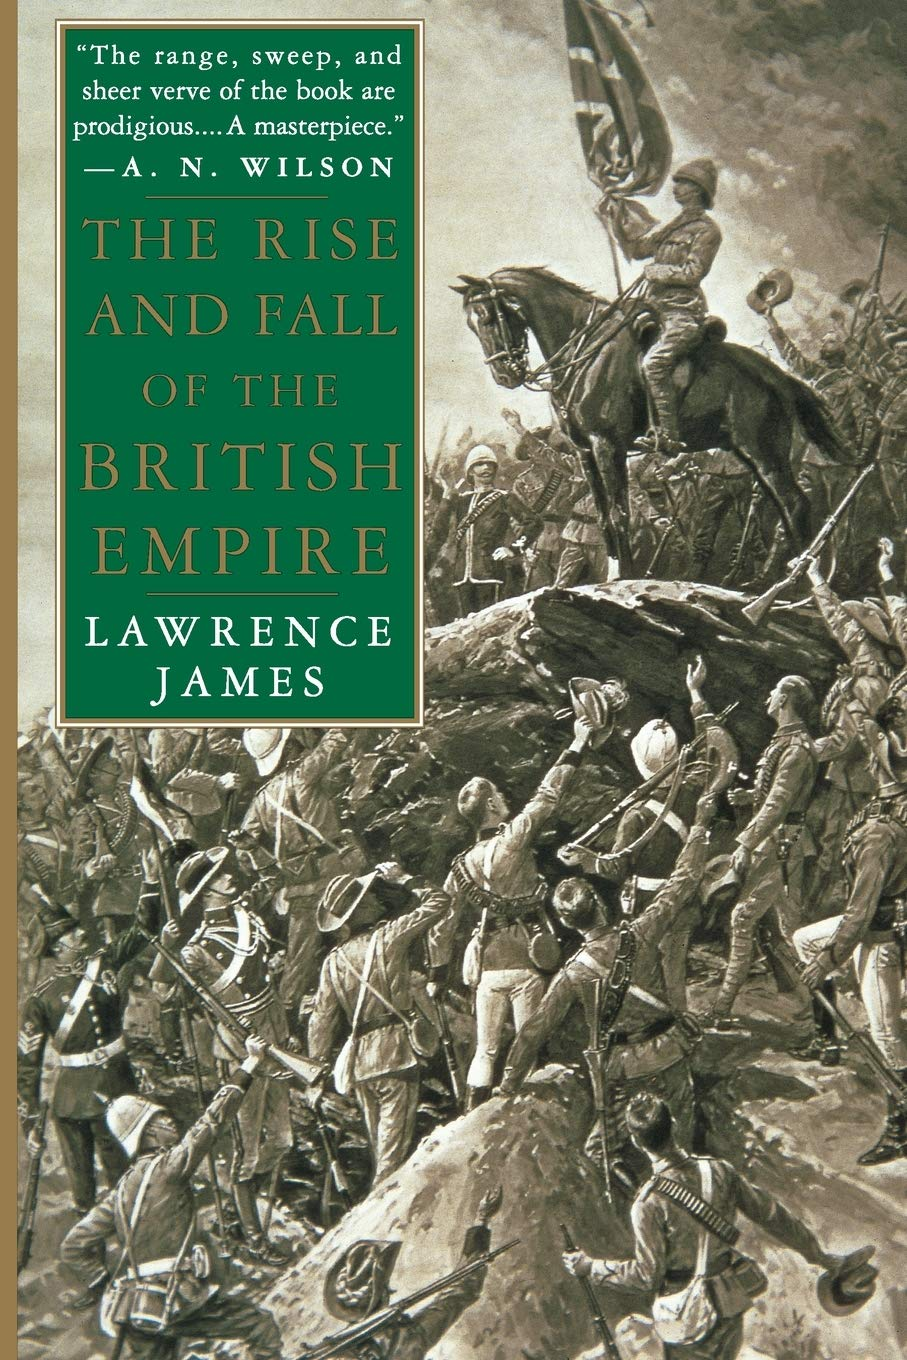 The Rise And Fall Of The British Empire James Lawrence 9780312169855 Amazon Com Books